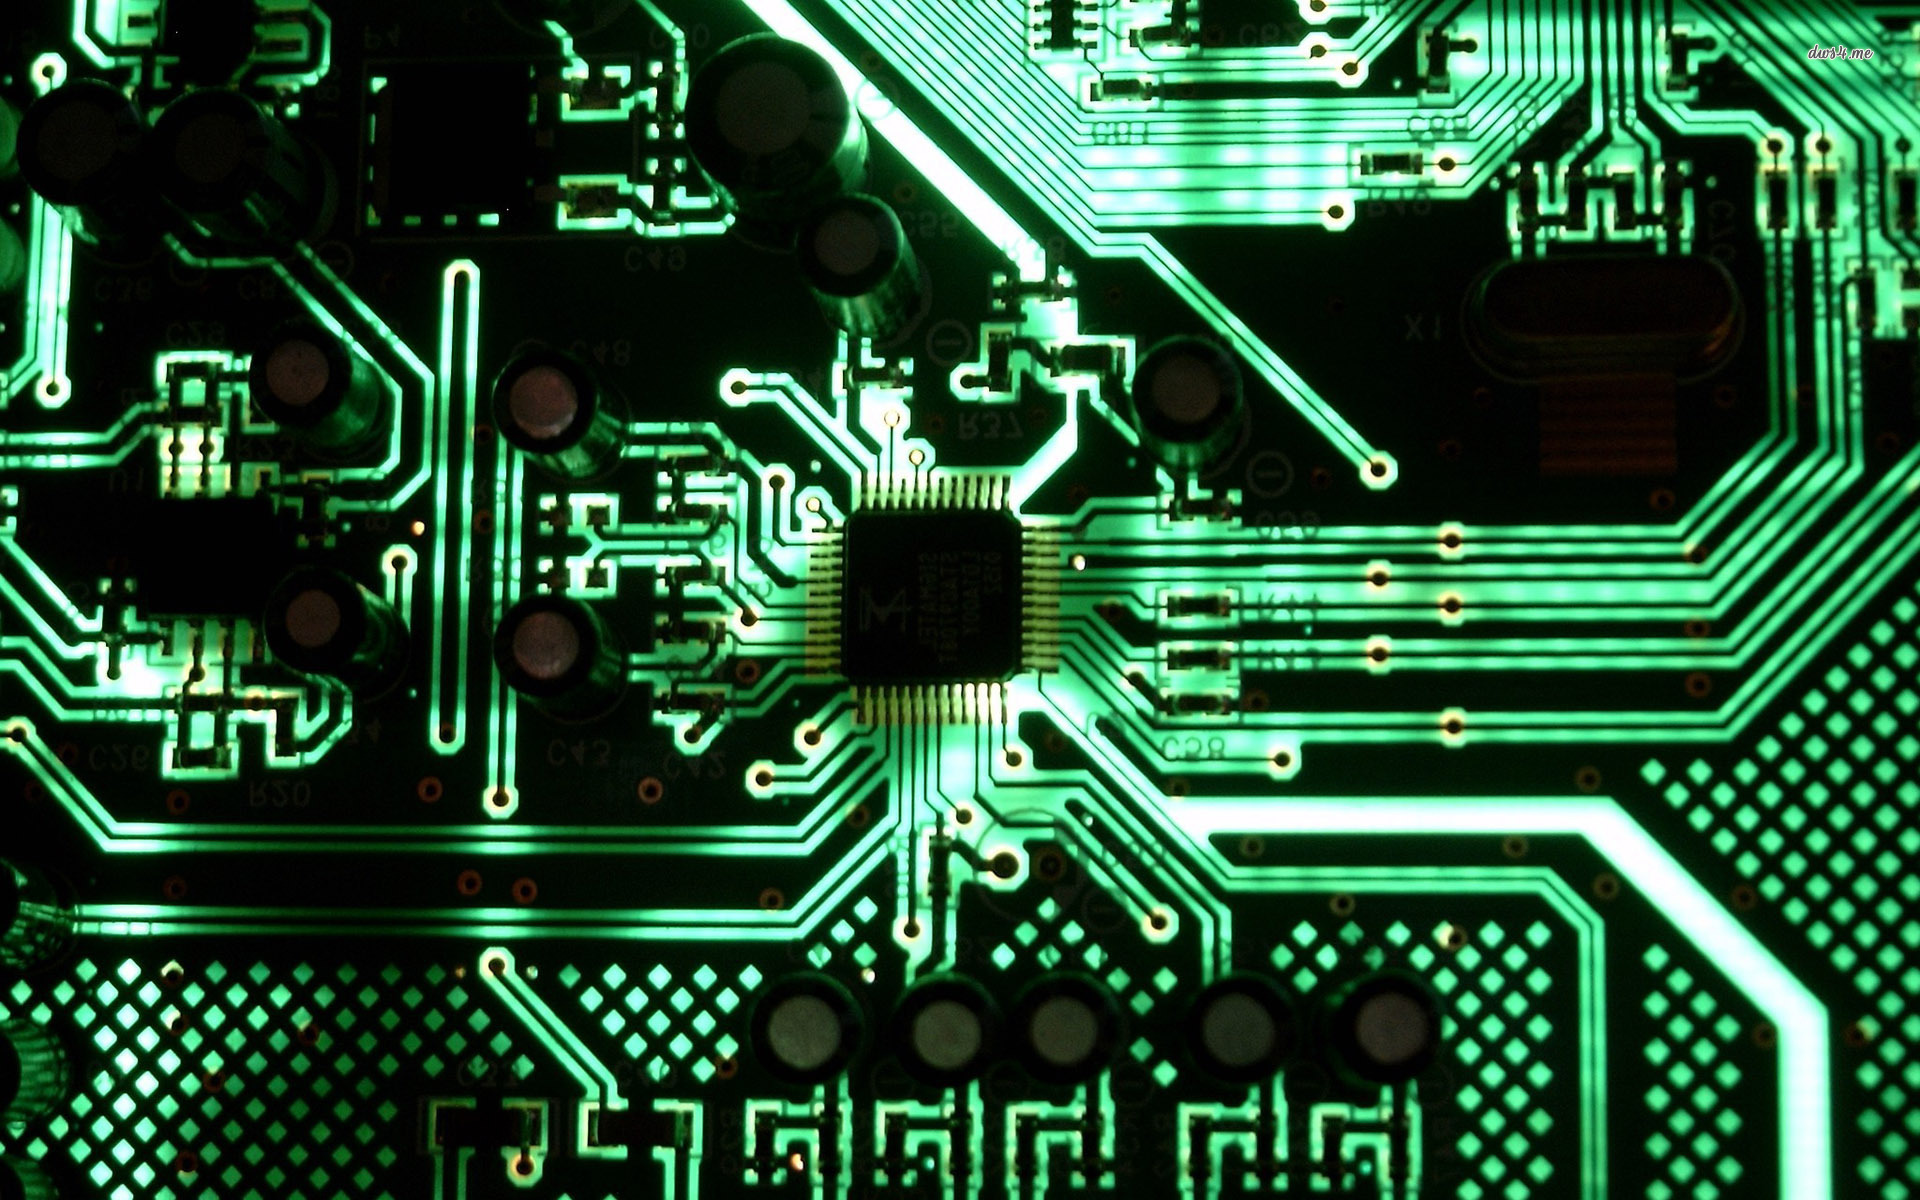 circuit board - Google Search | IT - circuit boards and circuit